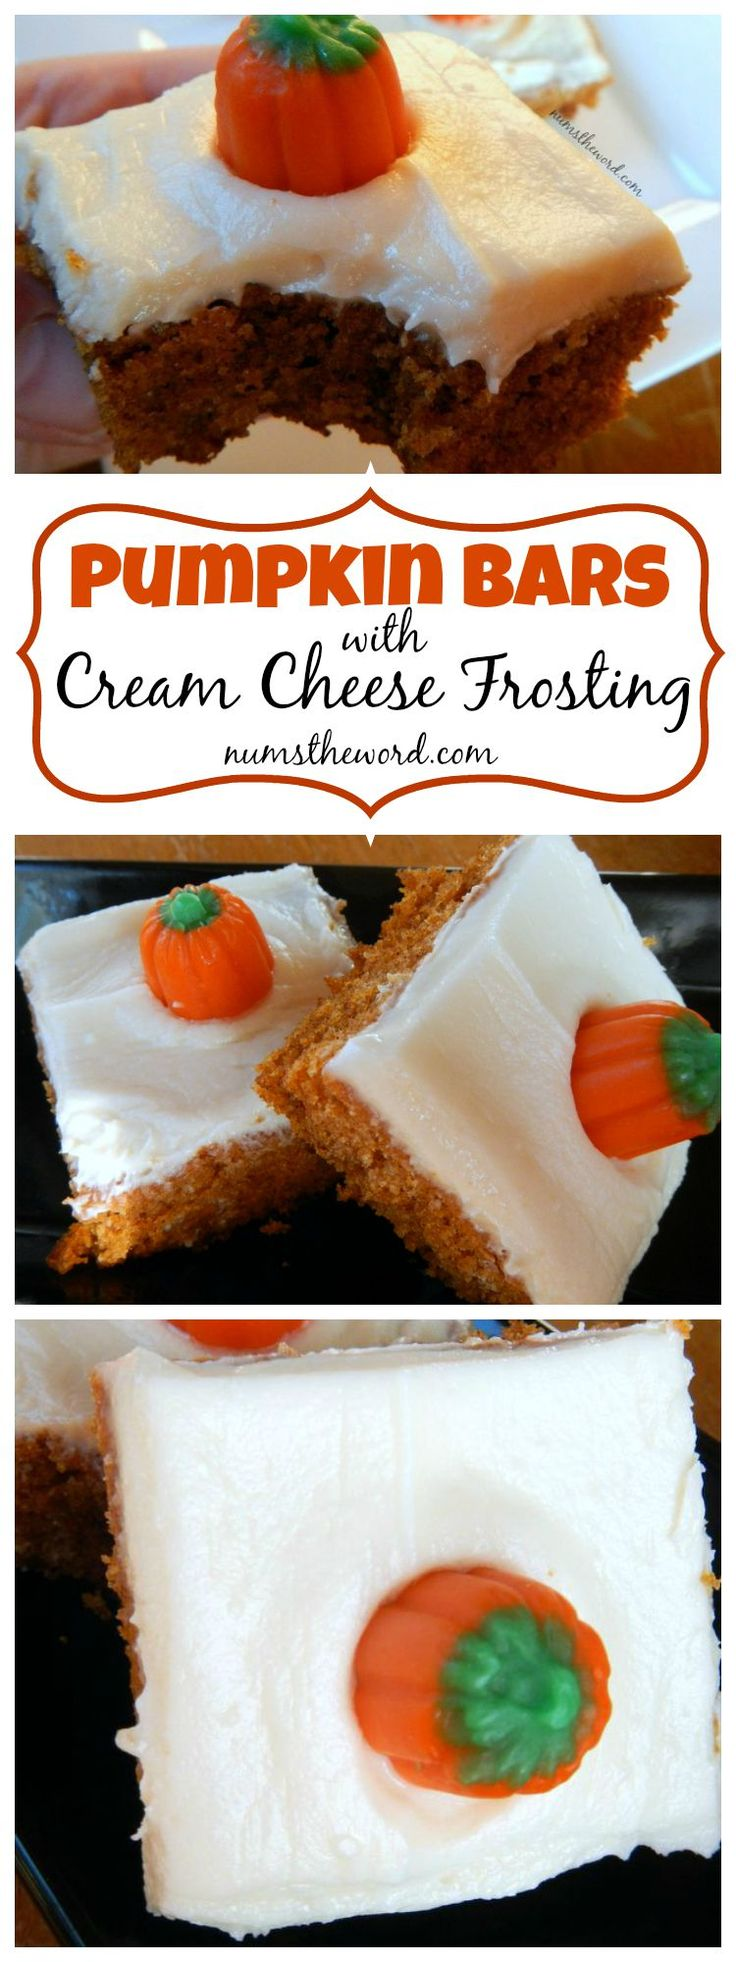 Pumpkin Bars with Cream Cheese Frosting - Looking for an easy fall dessert that everyone will love? Try this moist and delicious pumpkin bars with cream cheese frosting. Easy, simple and tasty!